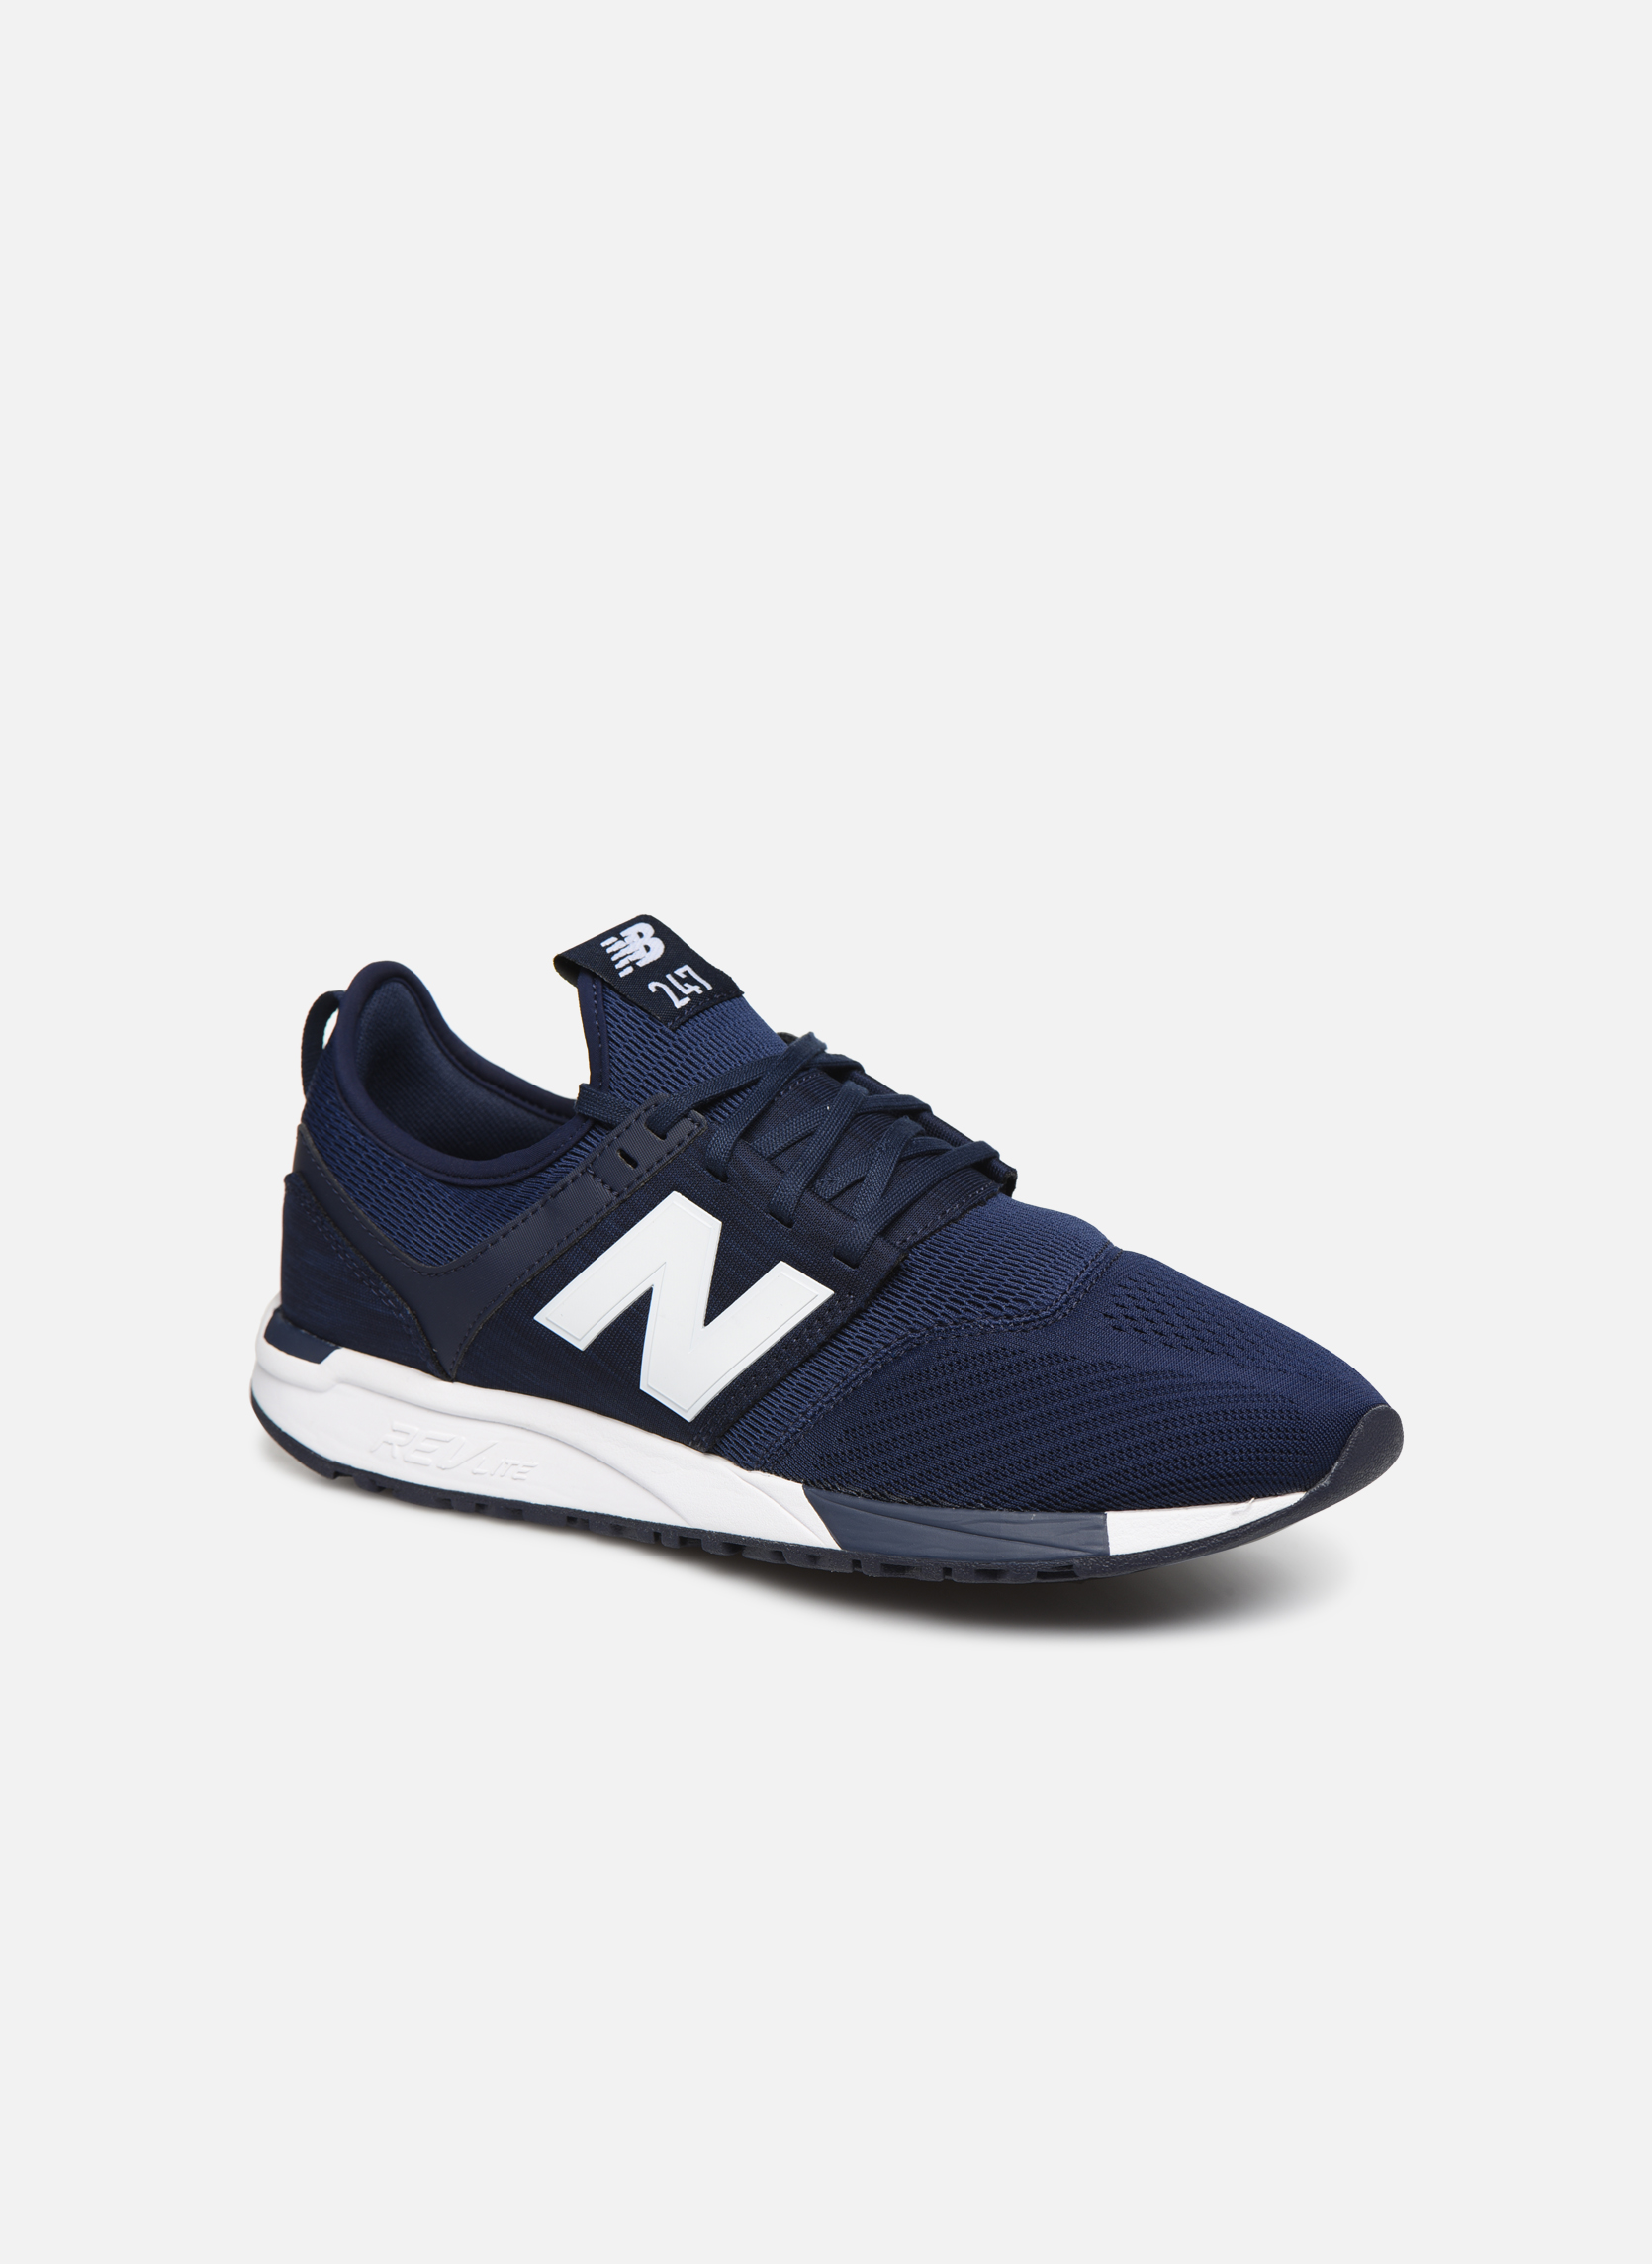 Marques Chaussure homme New Balance homme U220 Covert Green